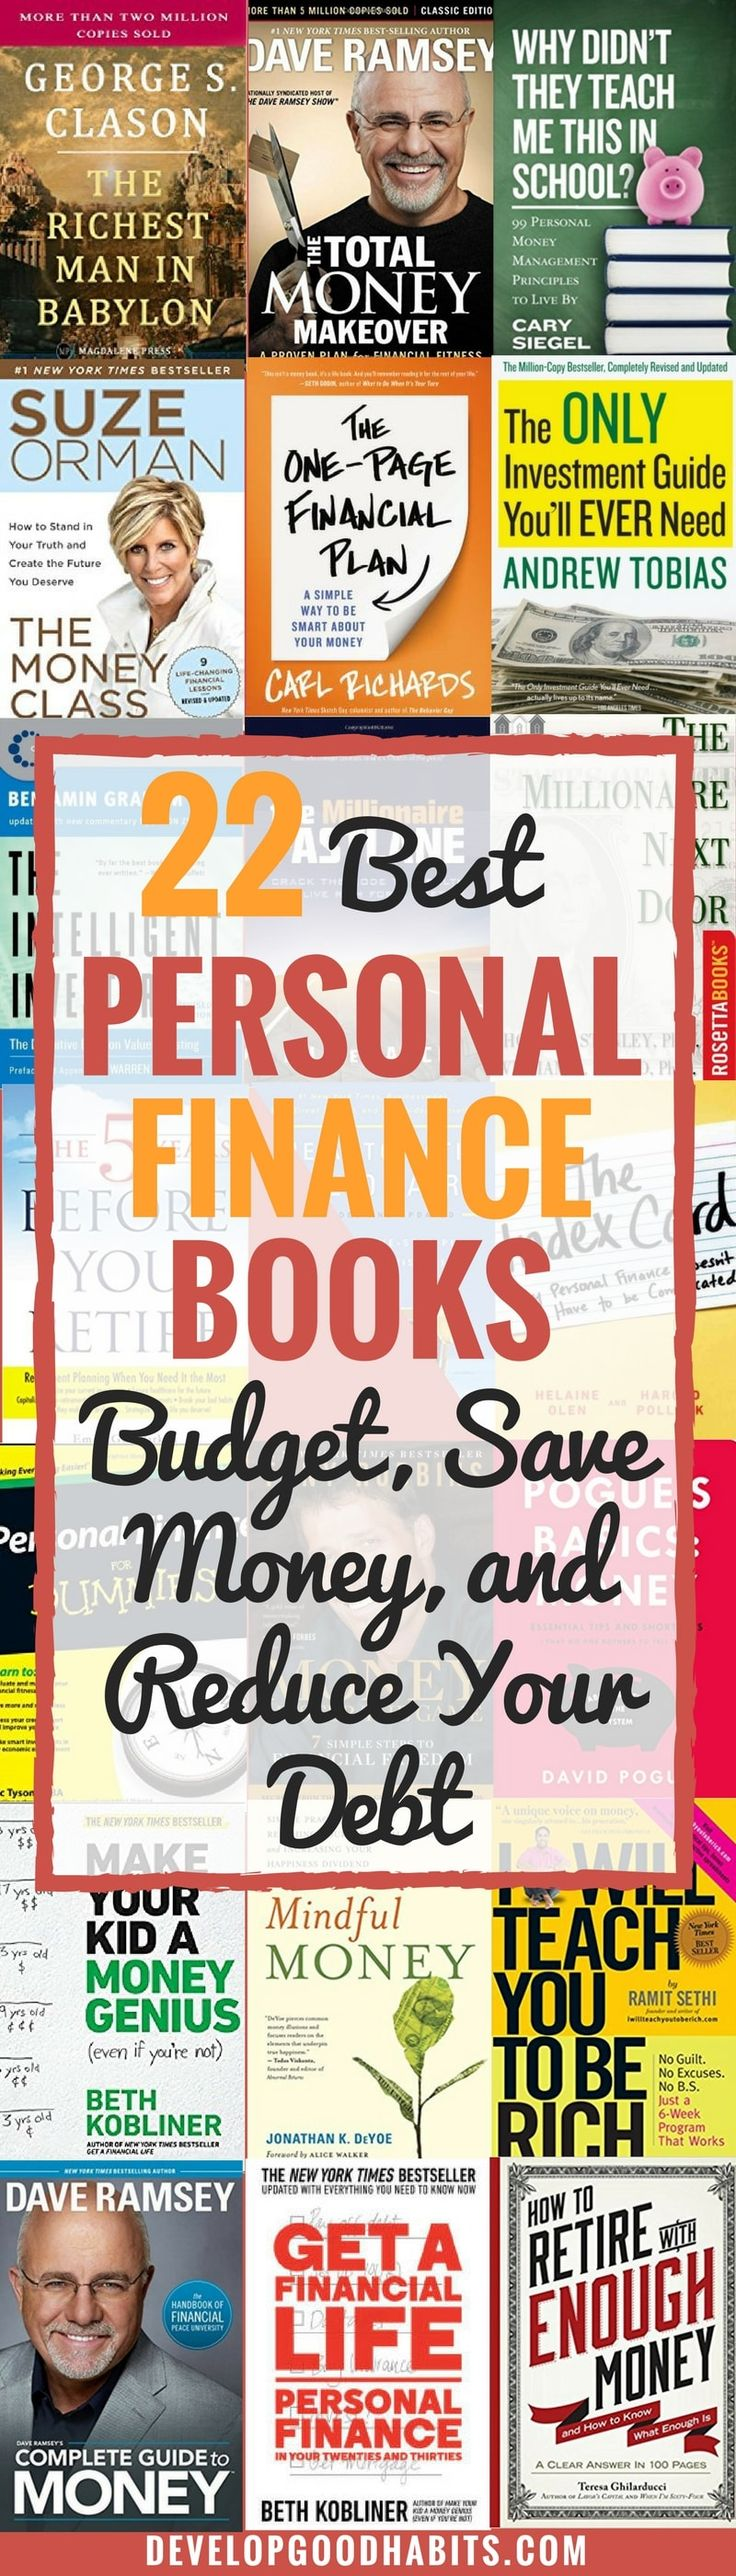 22 Best Personal Finance Books (budget, Save Money, And Reduce Your Debt)